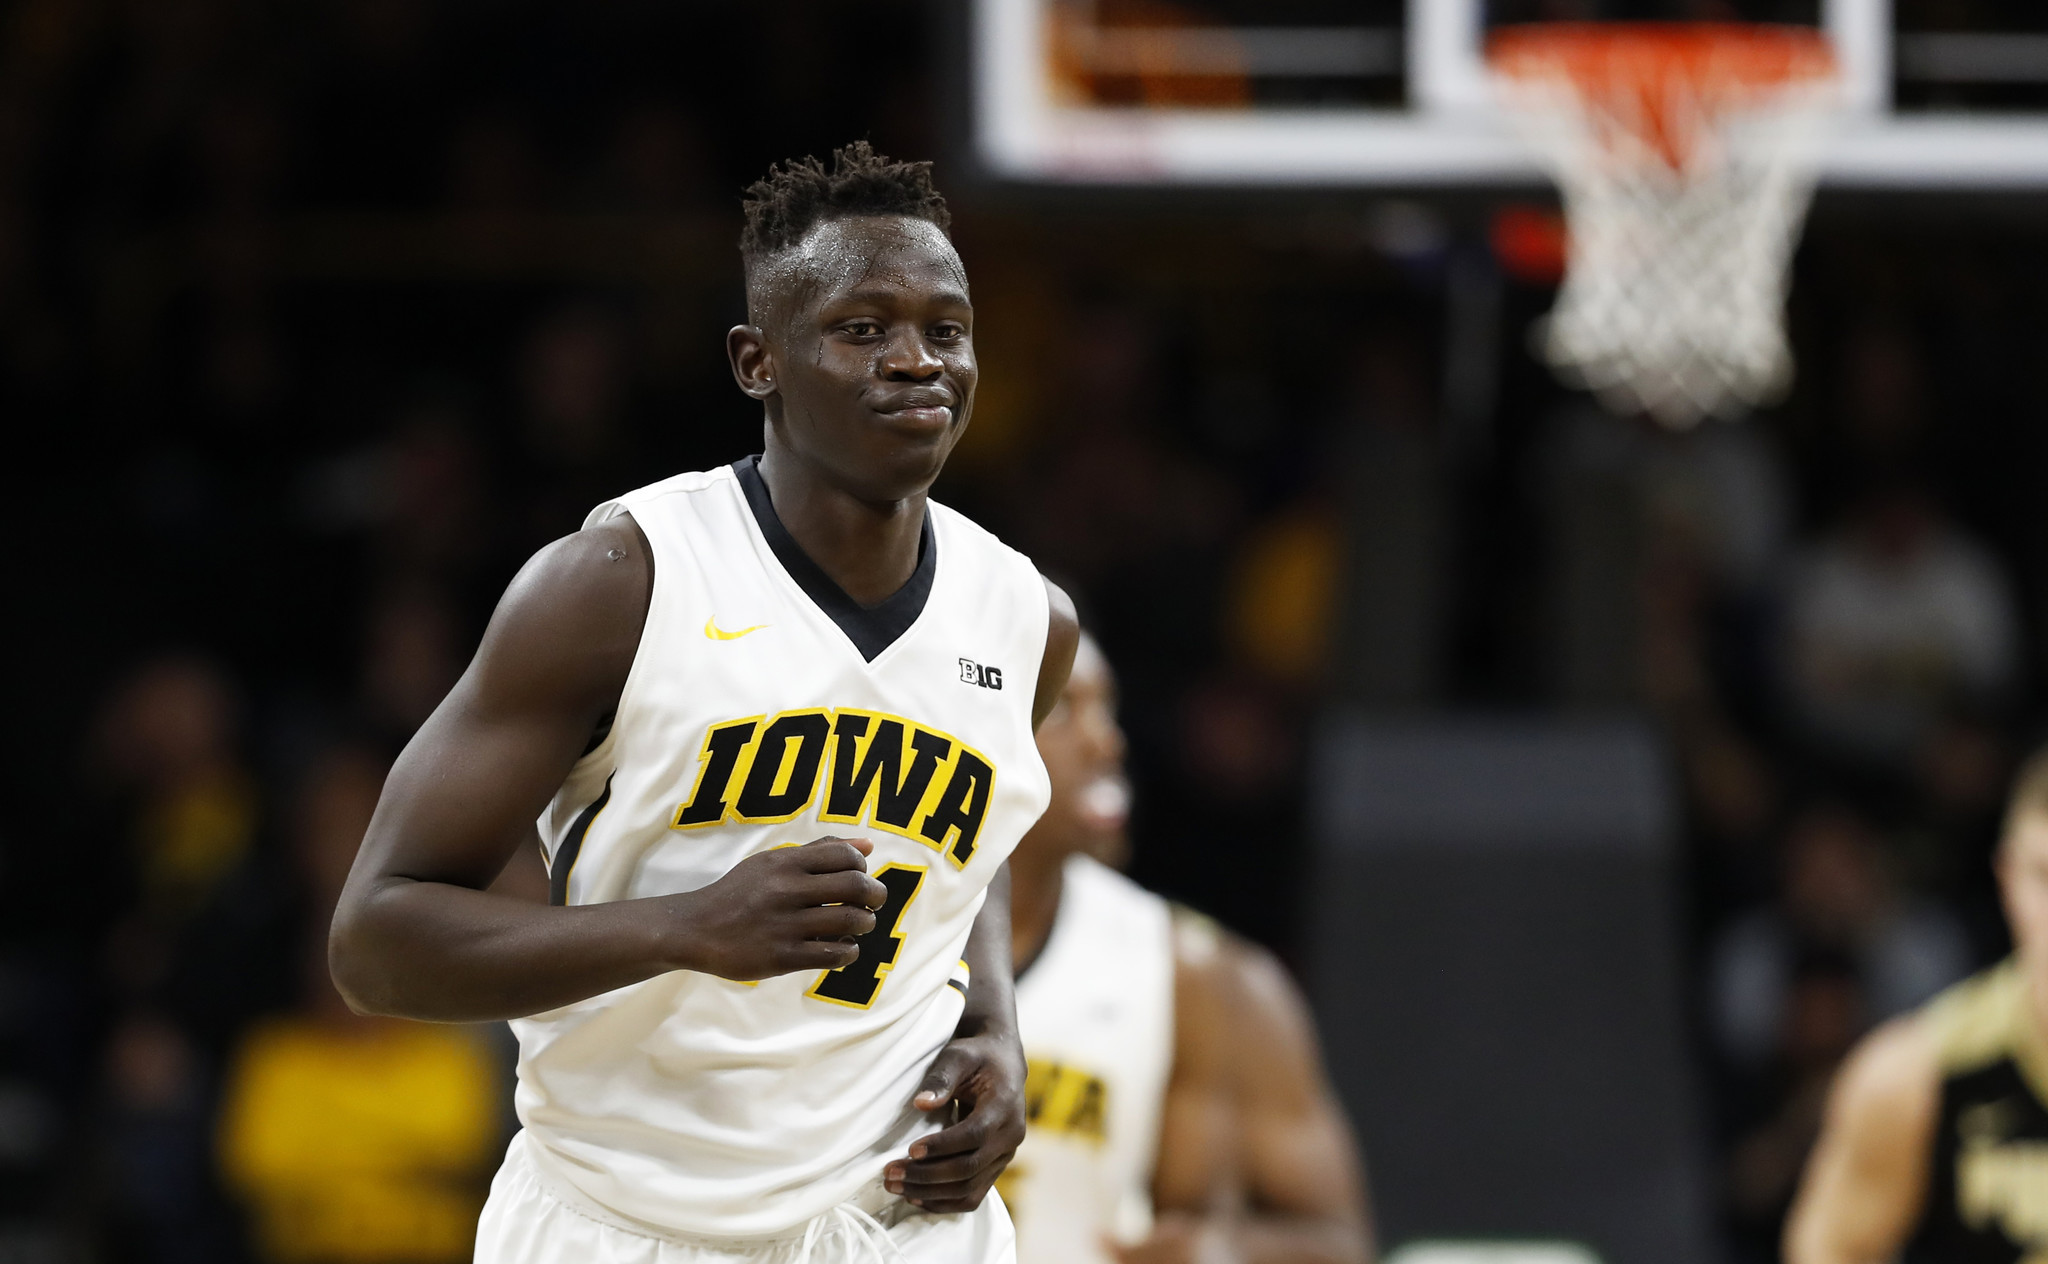 Bal-iowa-basketball-s-best-player-hurting-ahead-of-game-vs-no-25-maryland-20170116